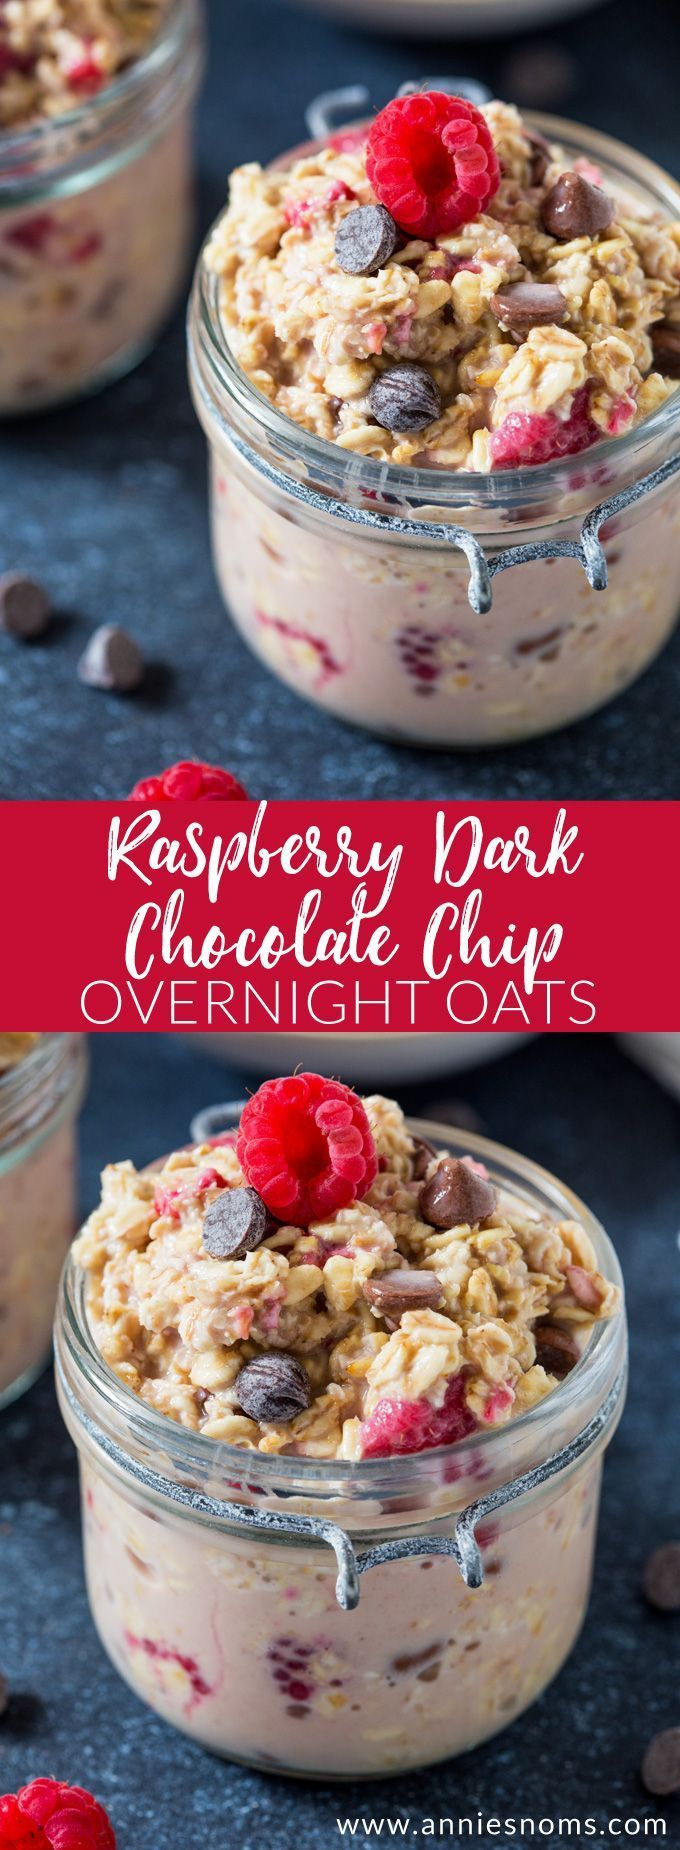 Thick and creamy overnight oats peppered with fresh raspberries and dark chocolate chips.